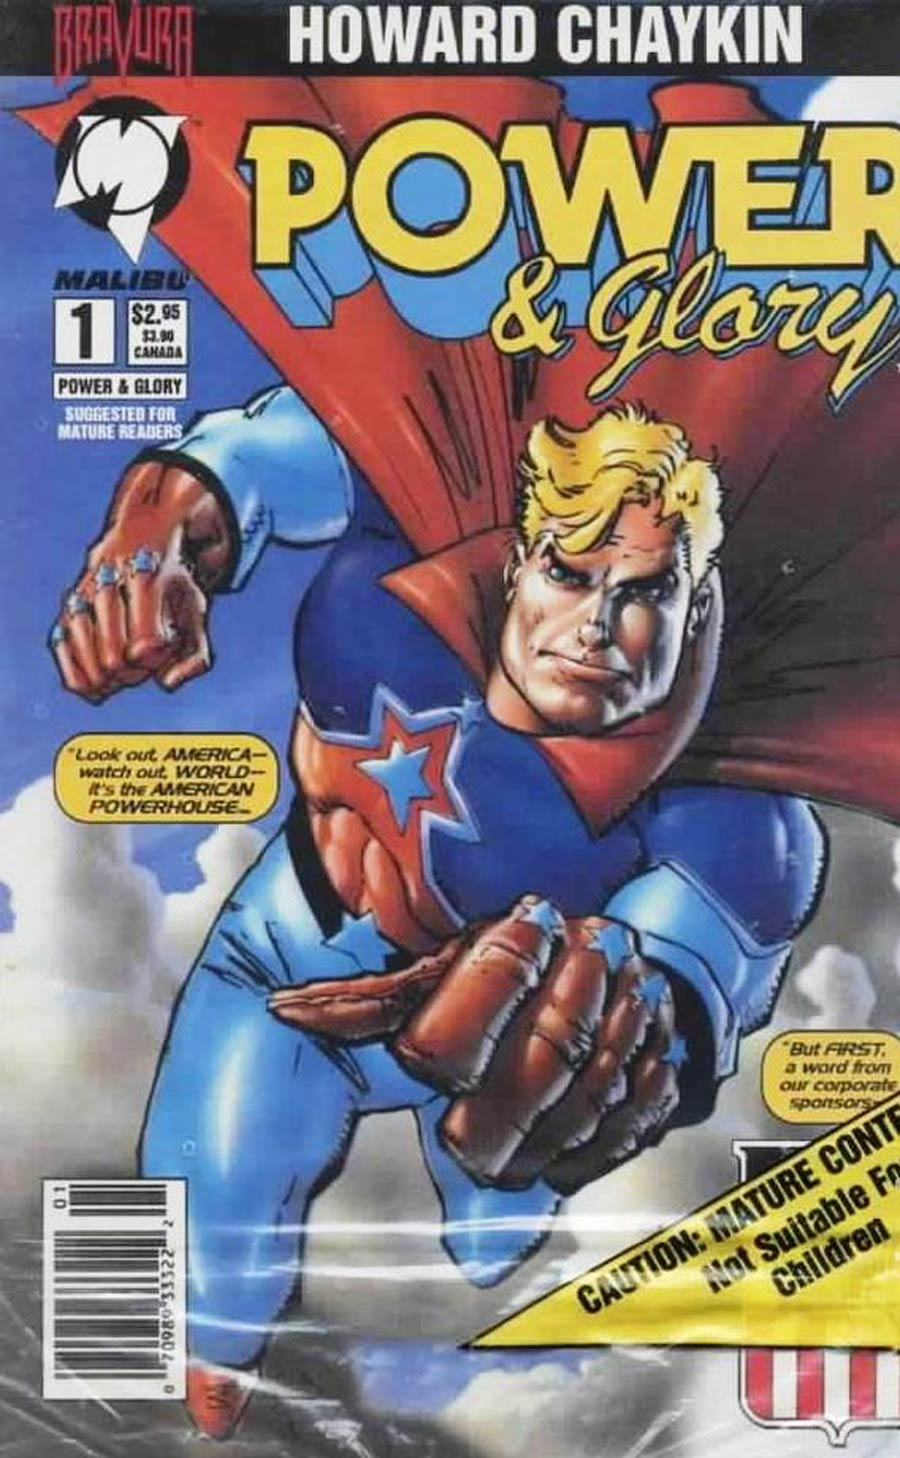 Power & Glory #1 Cover F Newsstand Edition With Polybag